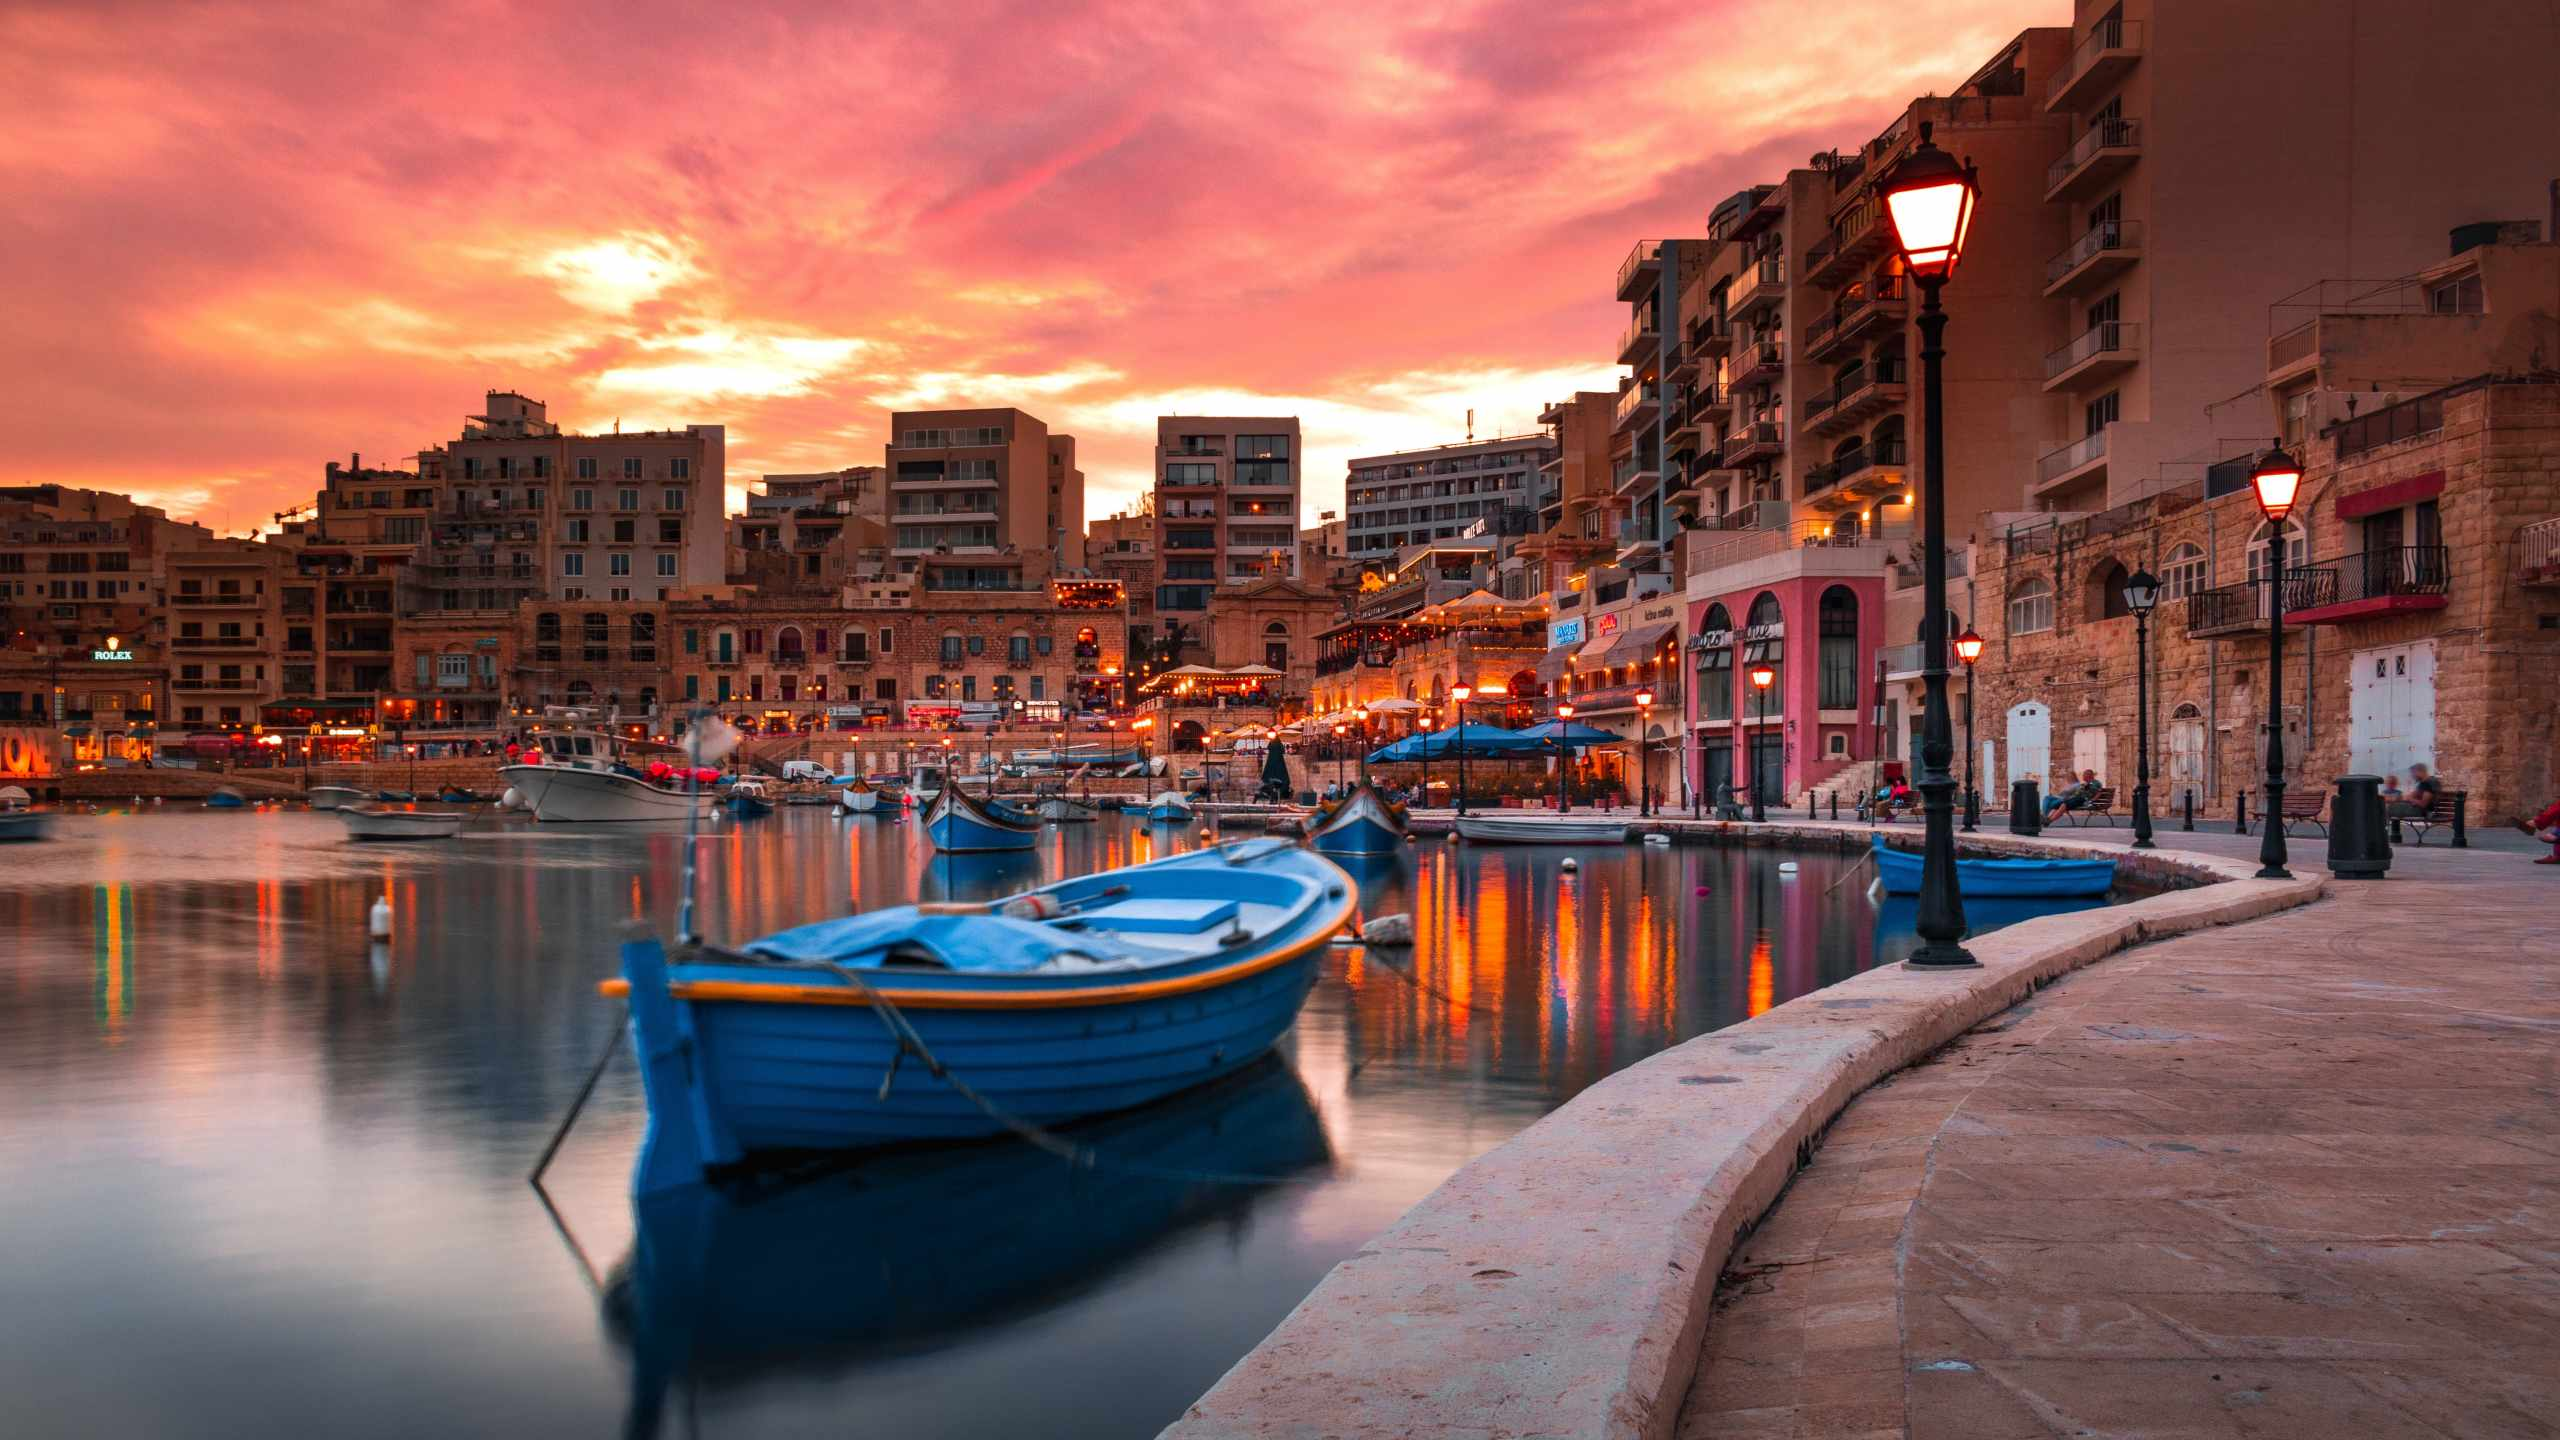 What to look for when booking accommodation in Malta